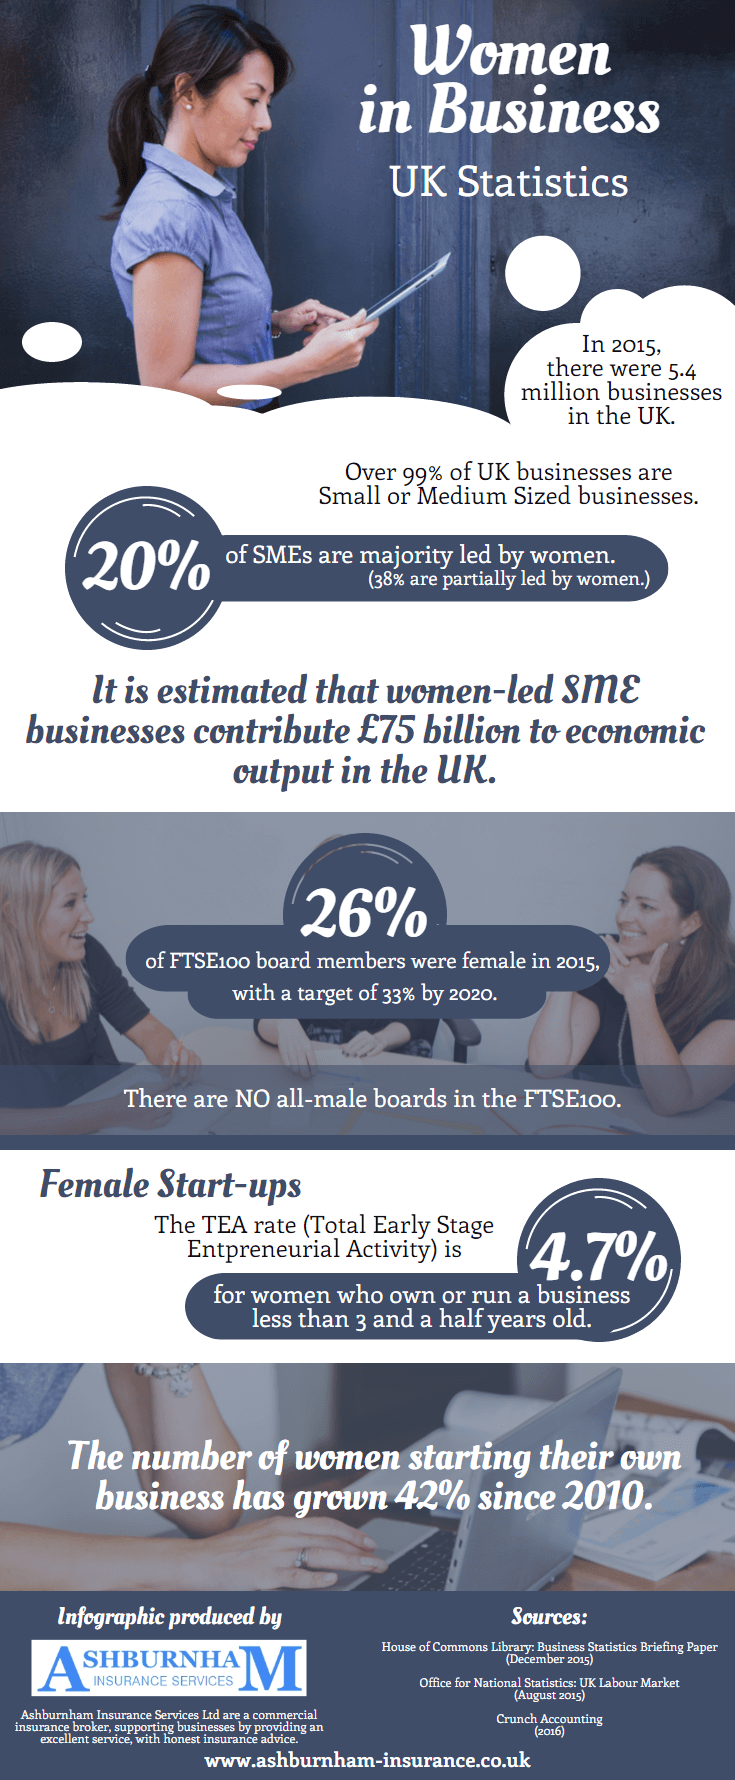 Women in Business: UK Statistics [Infographic]